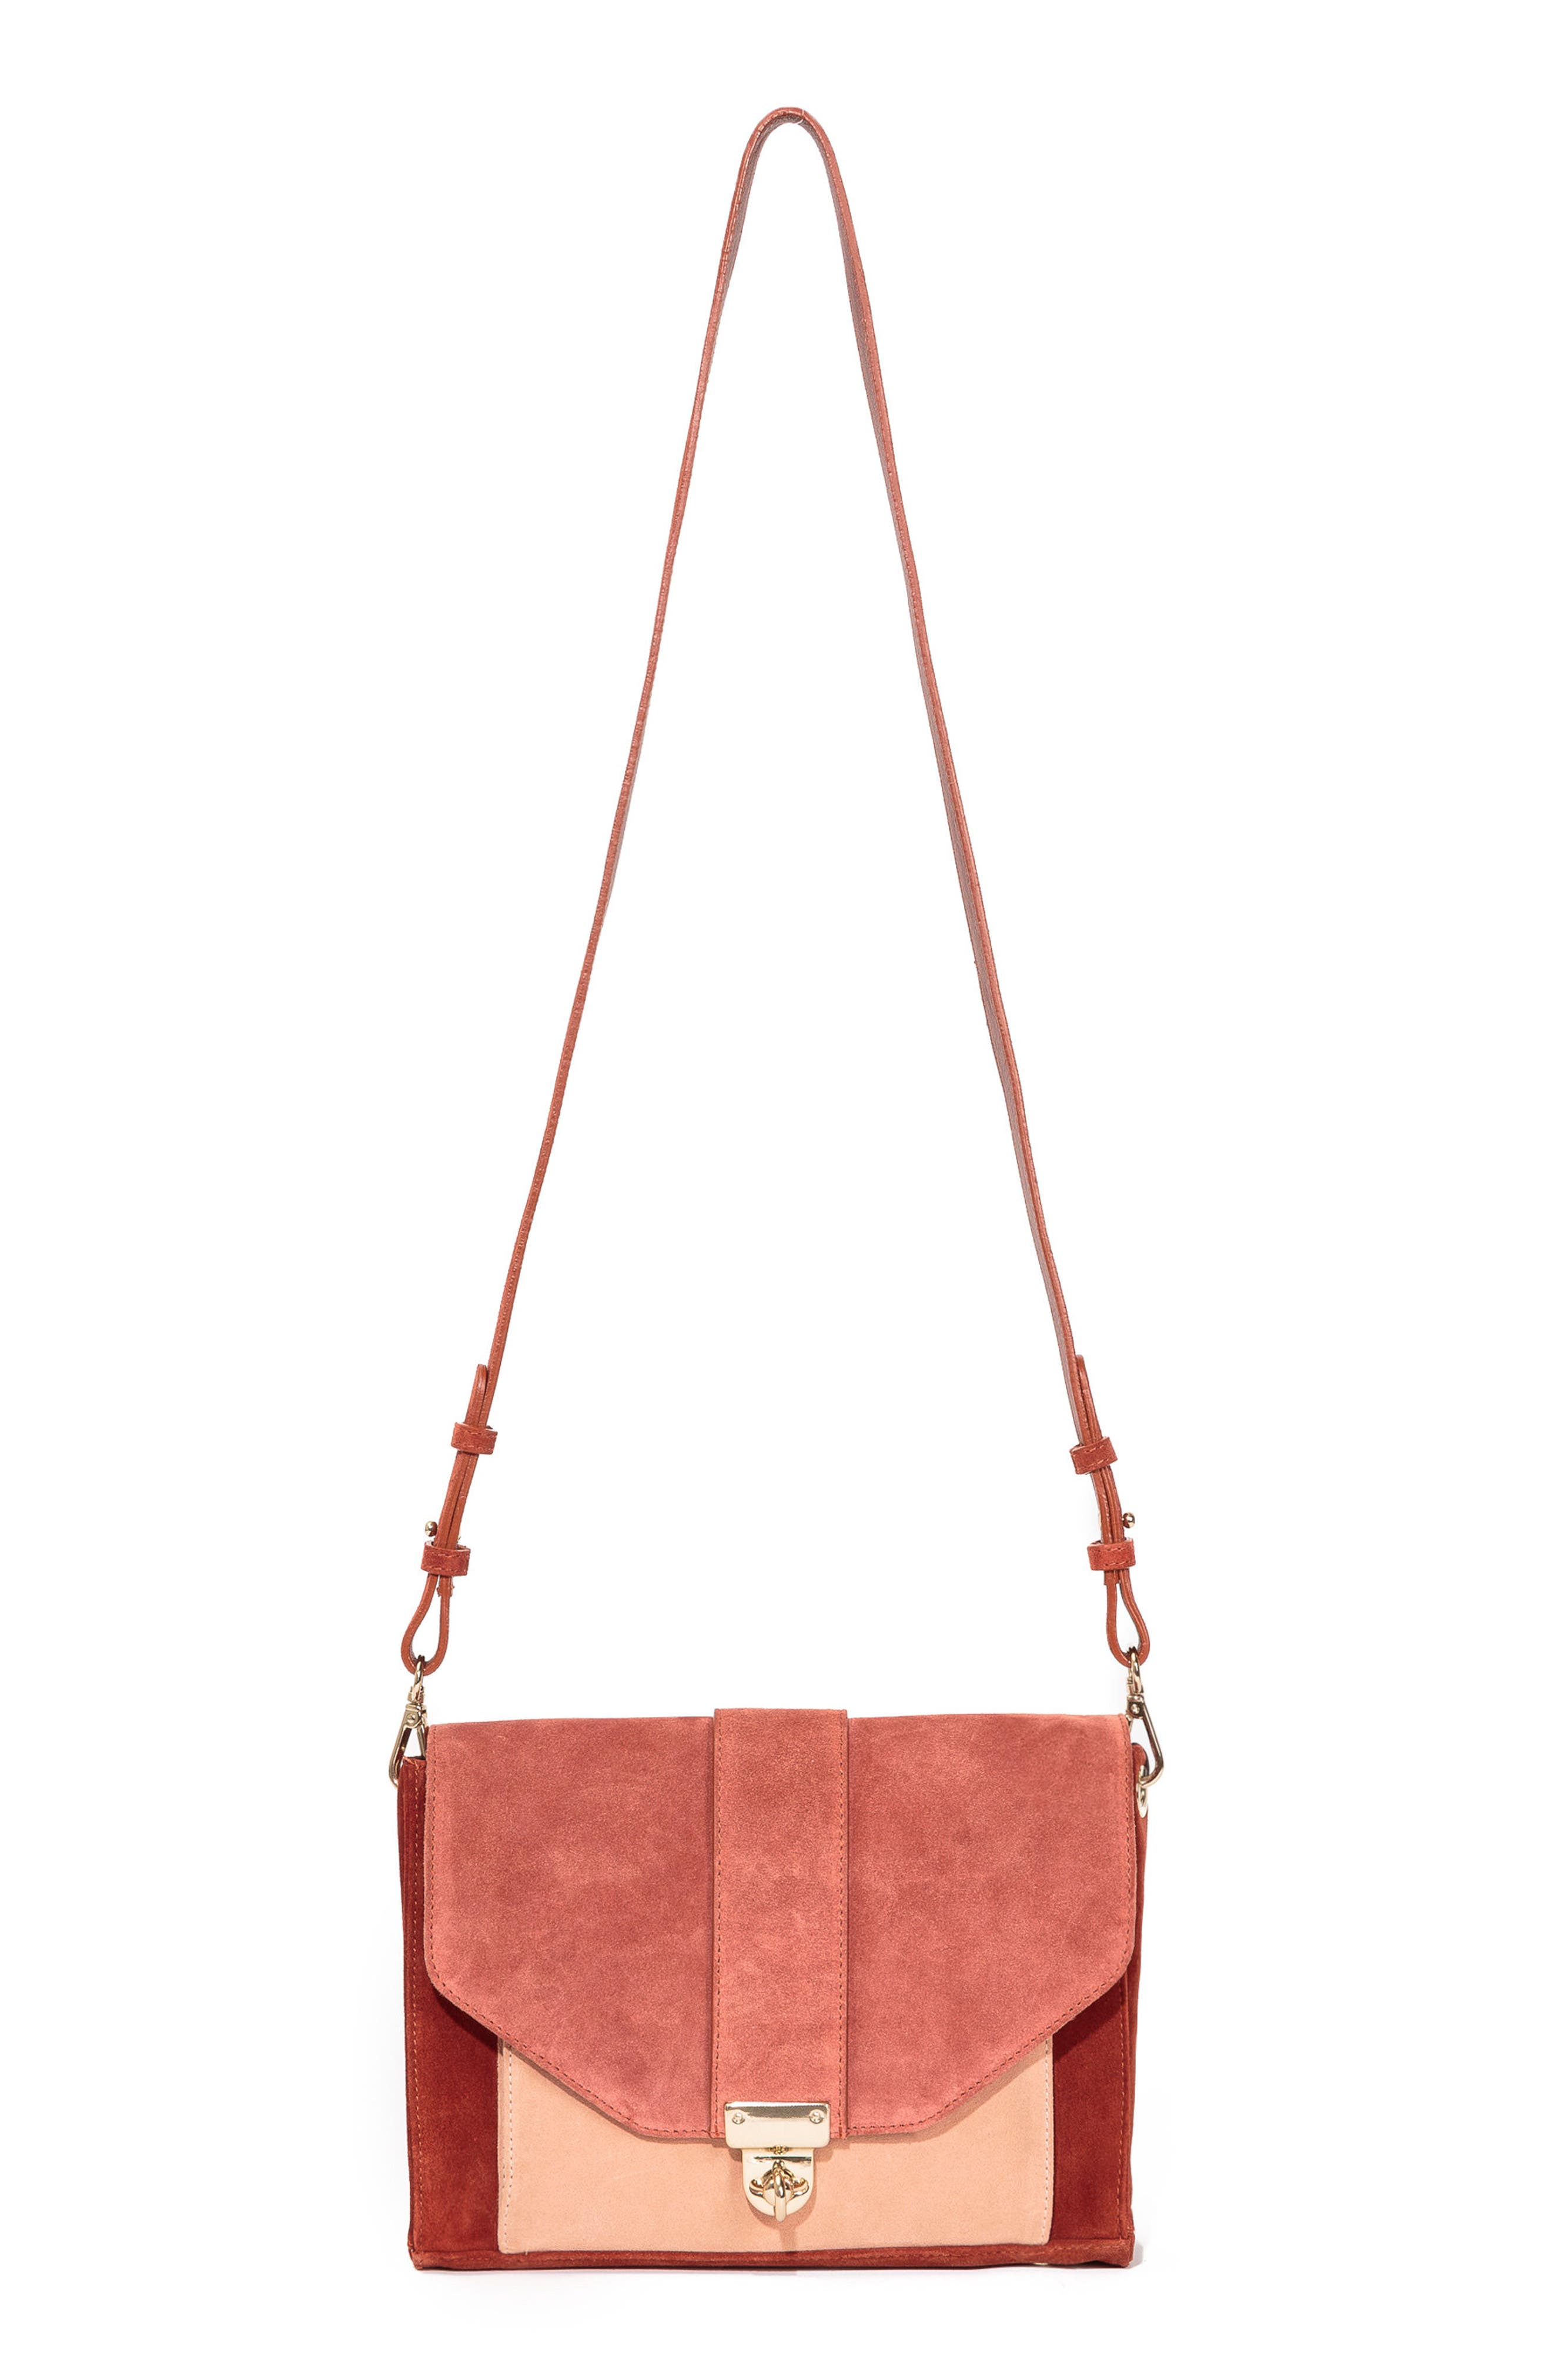 Tiger Crossbody Bag,                         Main,                         color, Terracotta